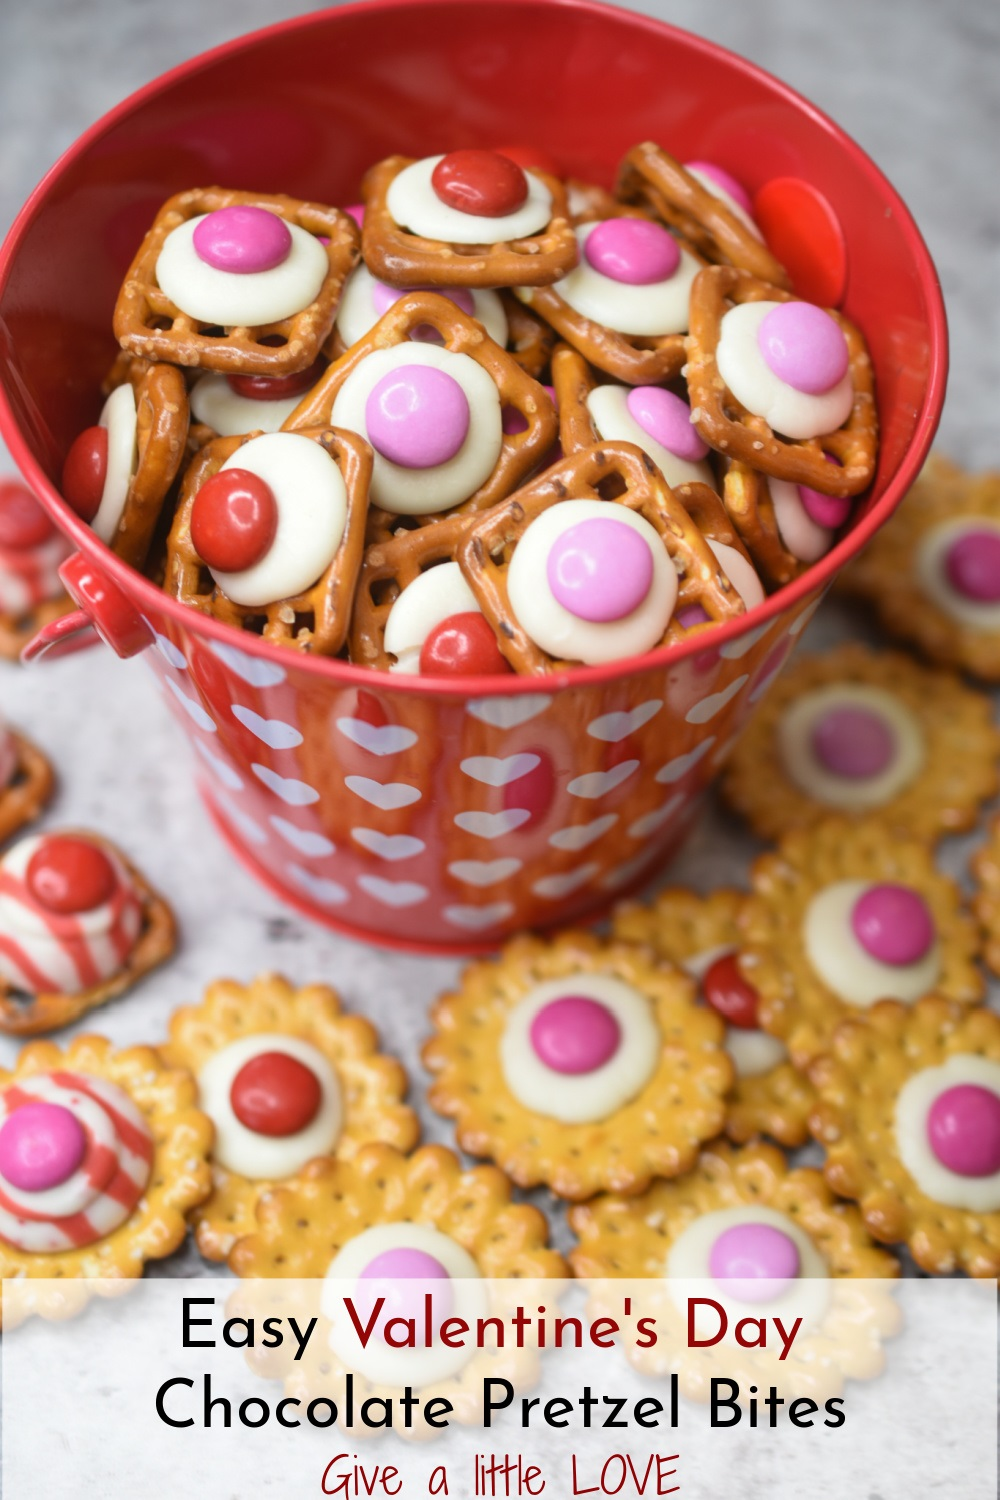 Easy Valentine's Day Chocolate Pretzel Bites in a small heart decorated tin